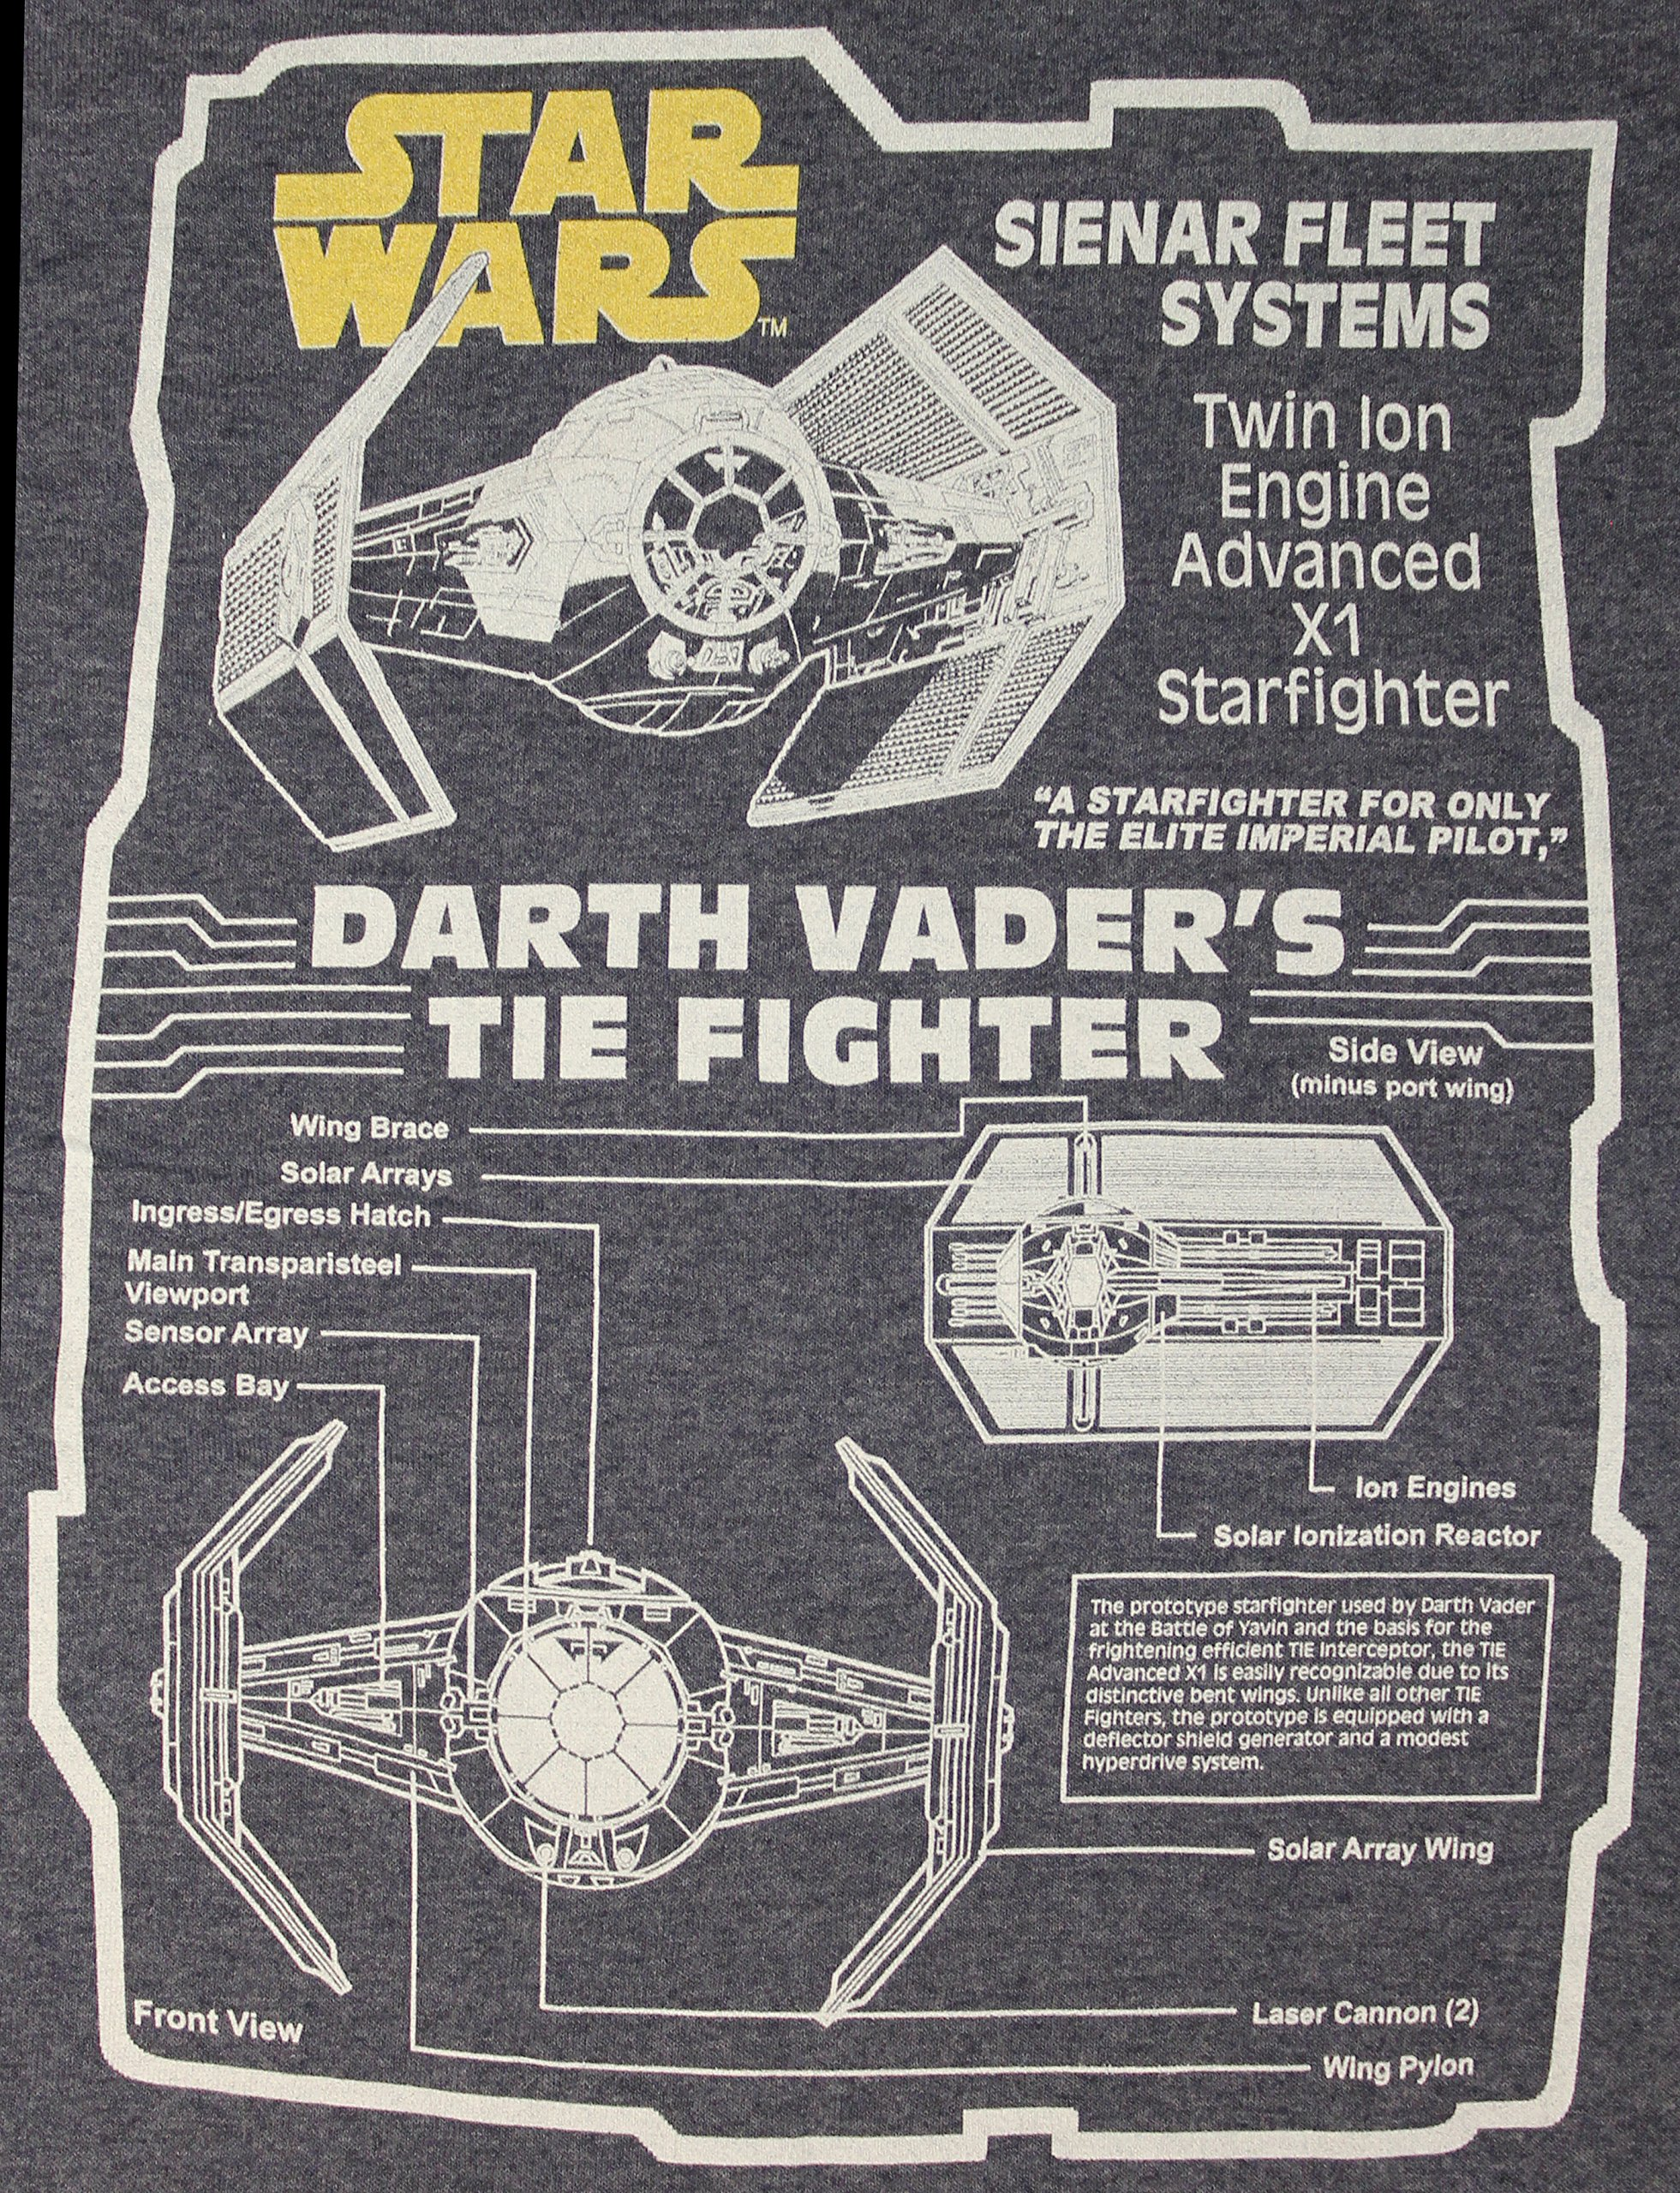 Men's Disney Star Wars Schematics Darth Vader's Tie Fighter T-Shirt on batman schematics, tron schematics, wall-e schematics, terminator schematics, kamen rider schematics, robotech schematics, prometheus schematics, a wing fighter schematics, pneumatic schematics, macross schematics, stargate schematics, star destroyer, pacific rim schematics,